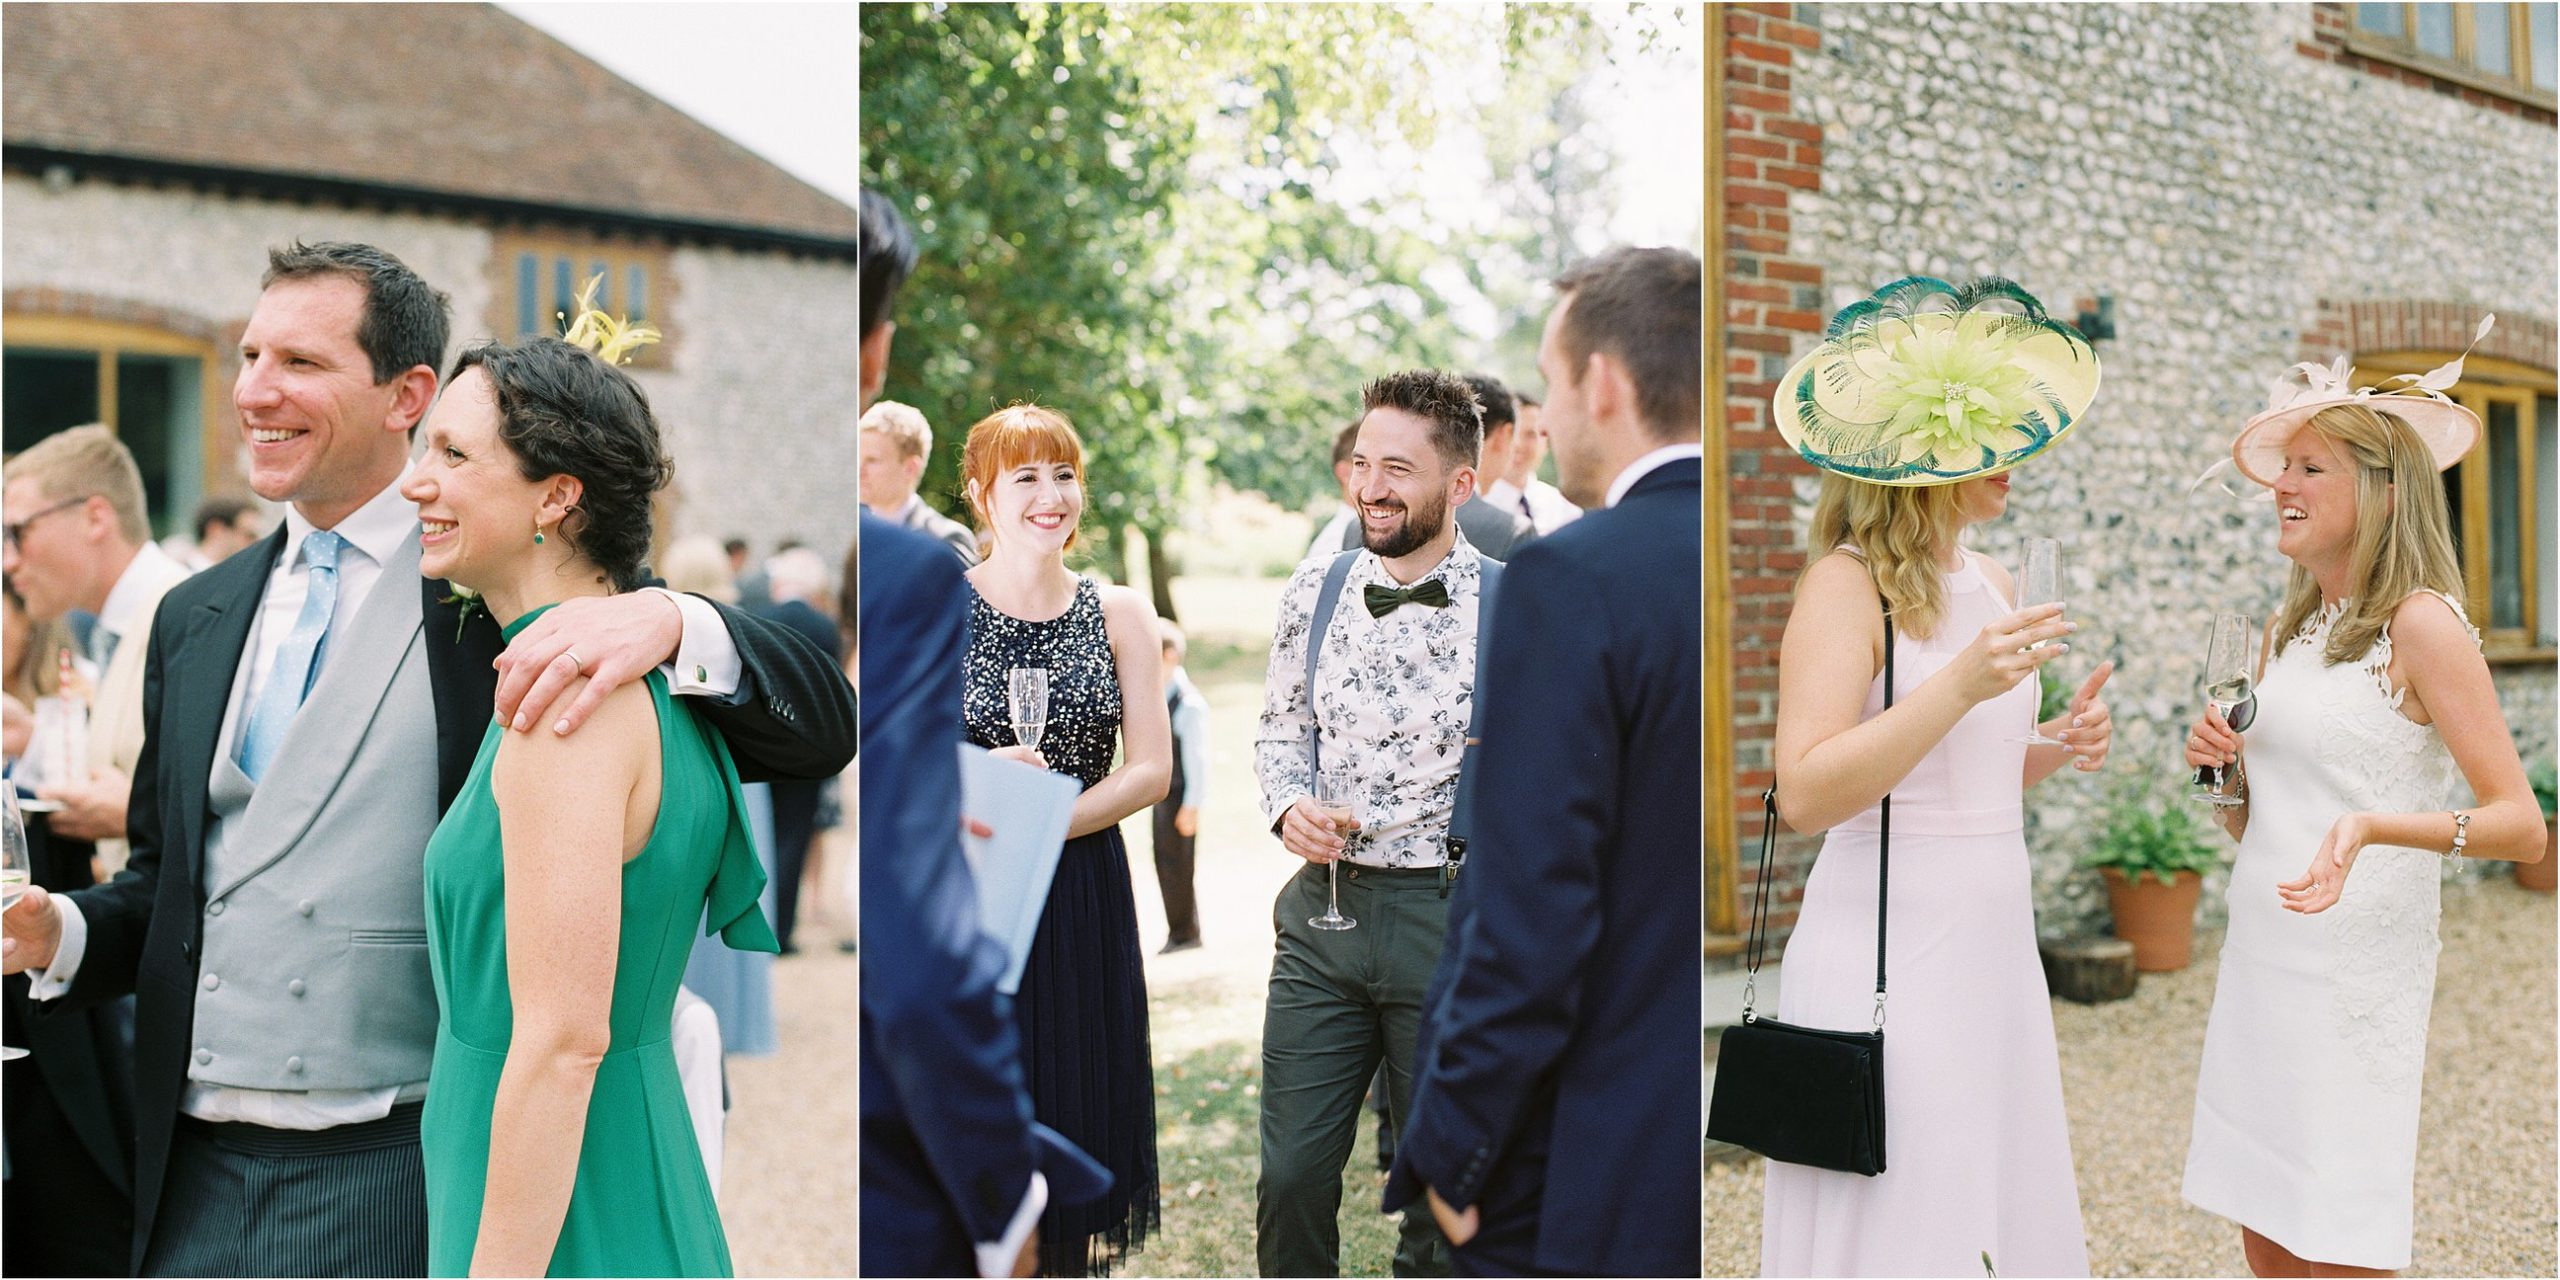 relaxed wedding photographer captures guests hugging